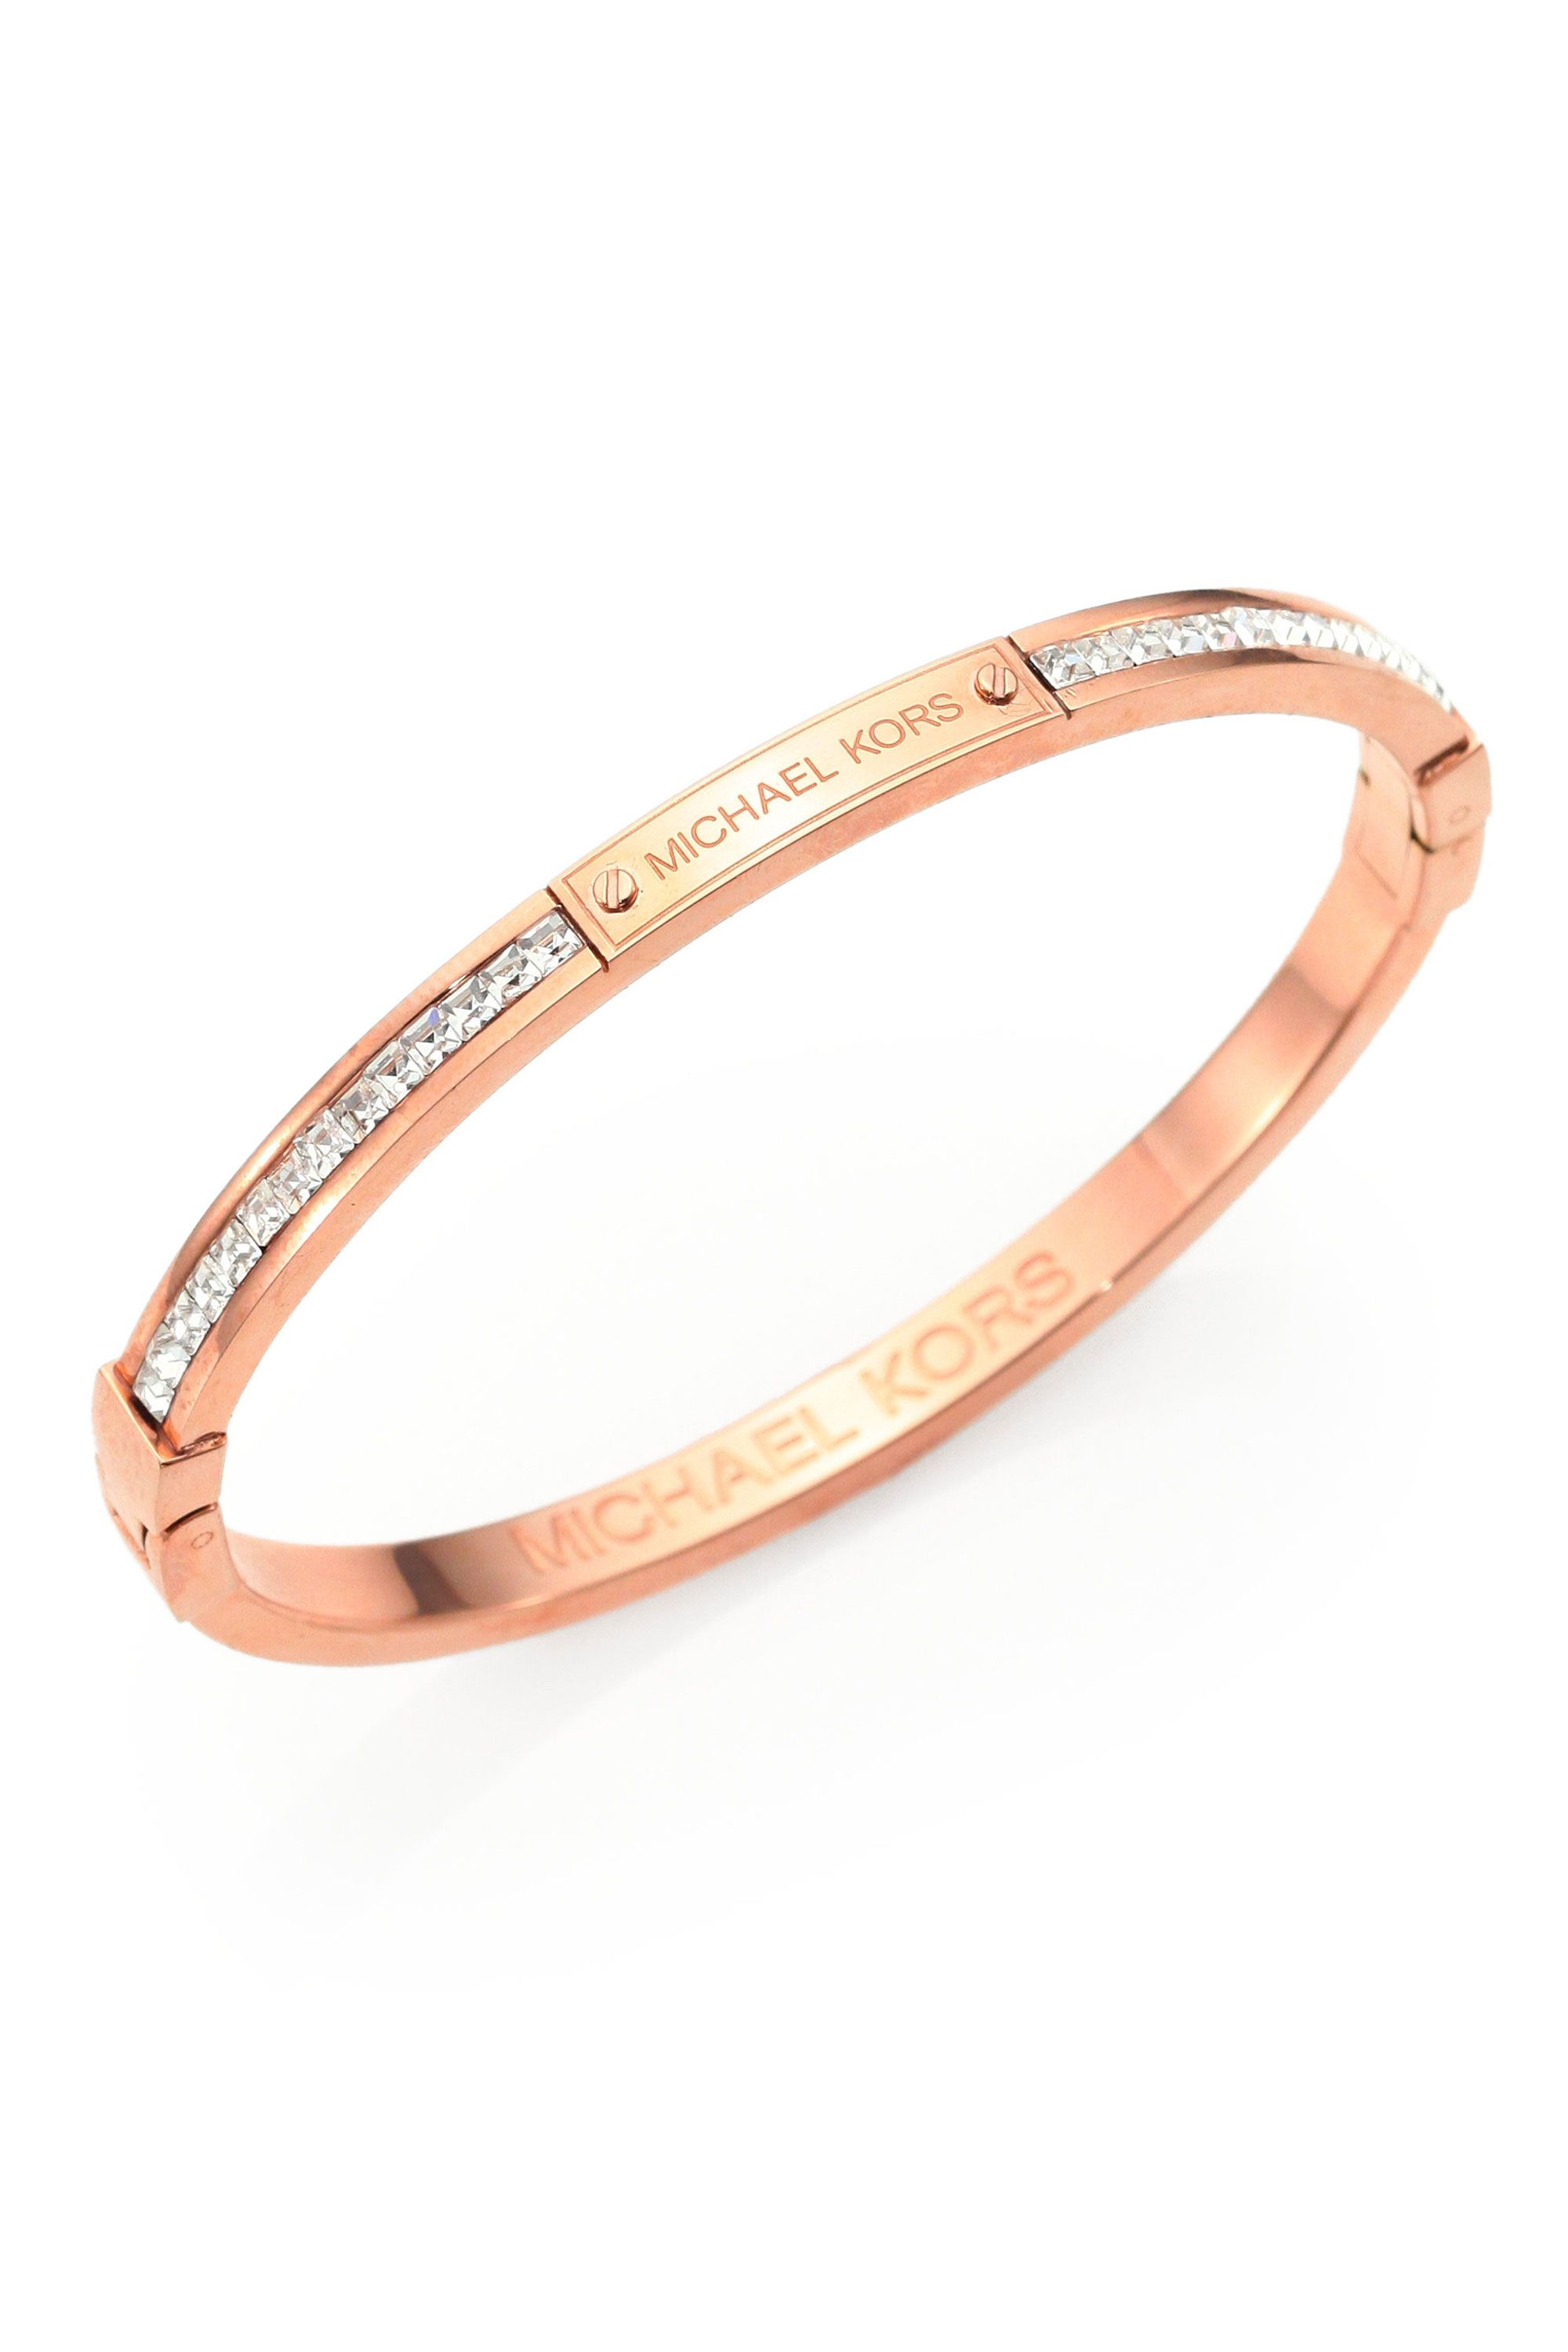 michael gold pave braceletrose rose kors normal product goldtone lyst in bracelet pink bangles gallery diamond charm bangle lock jewelry